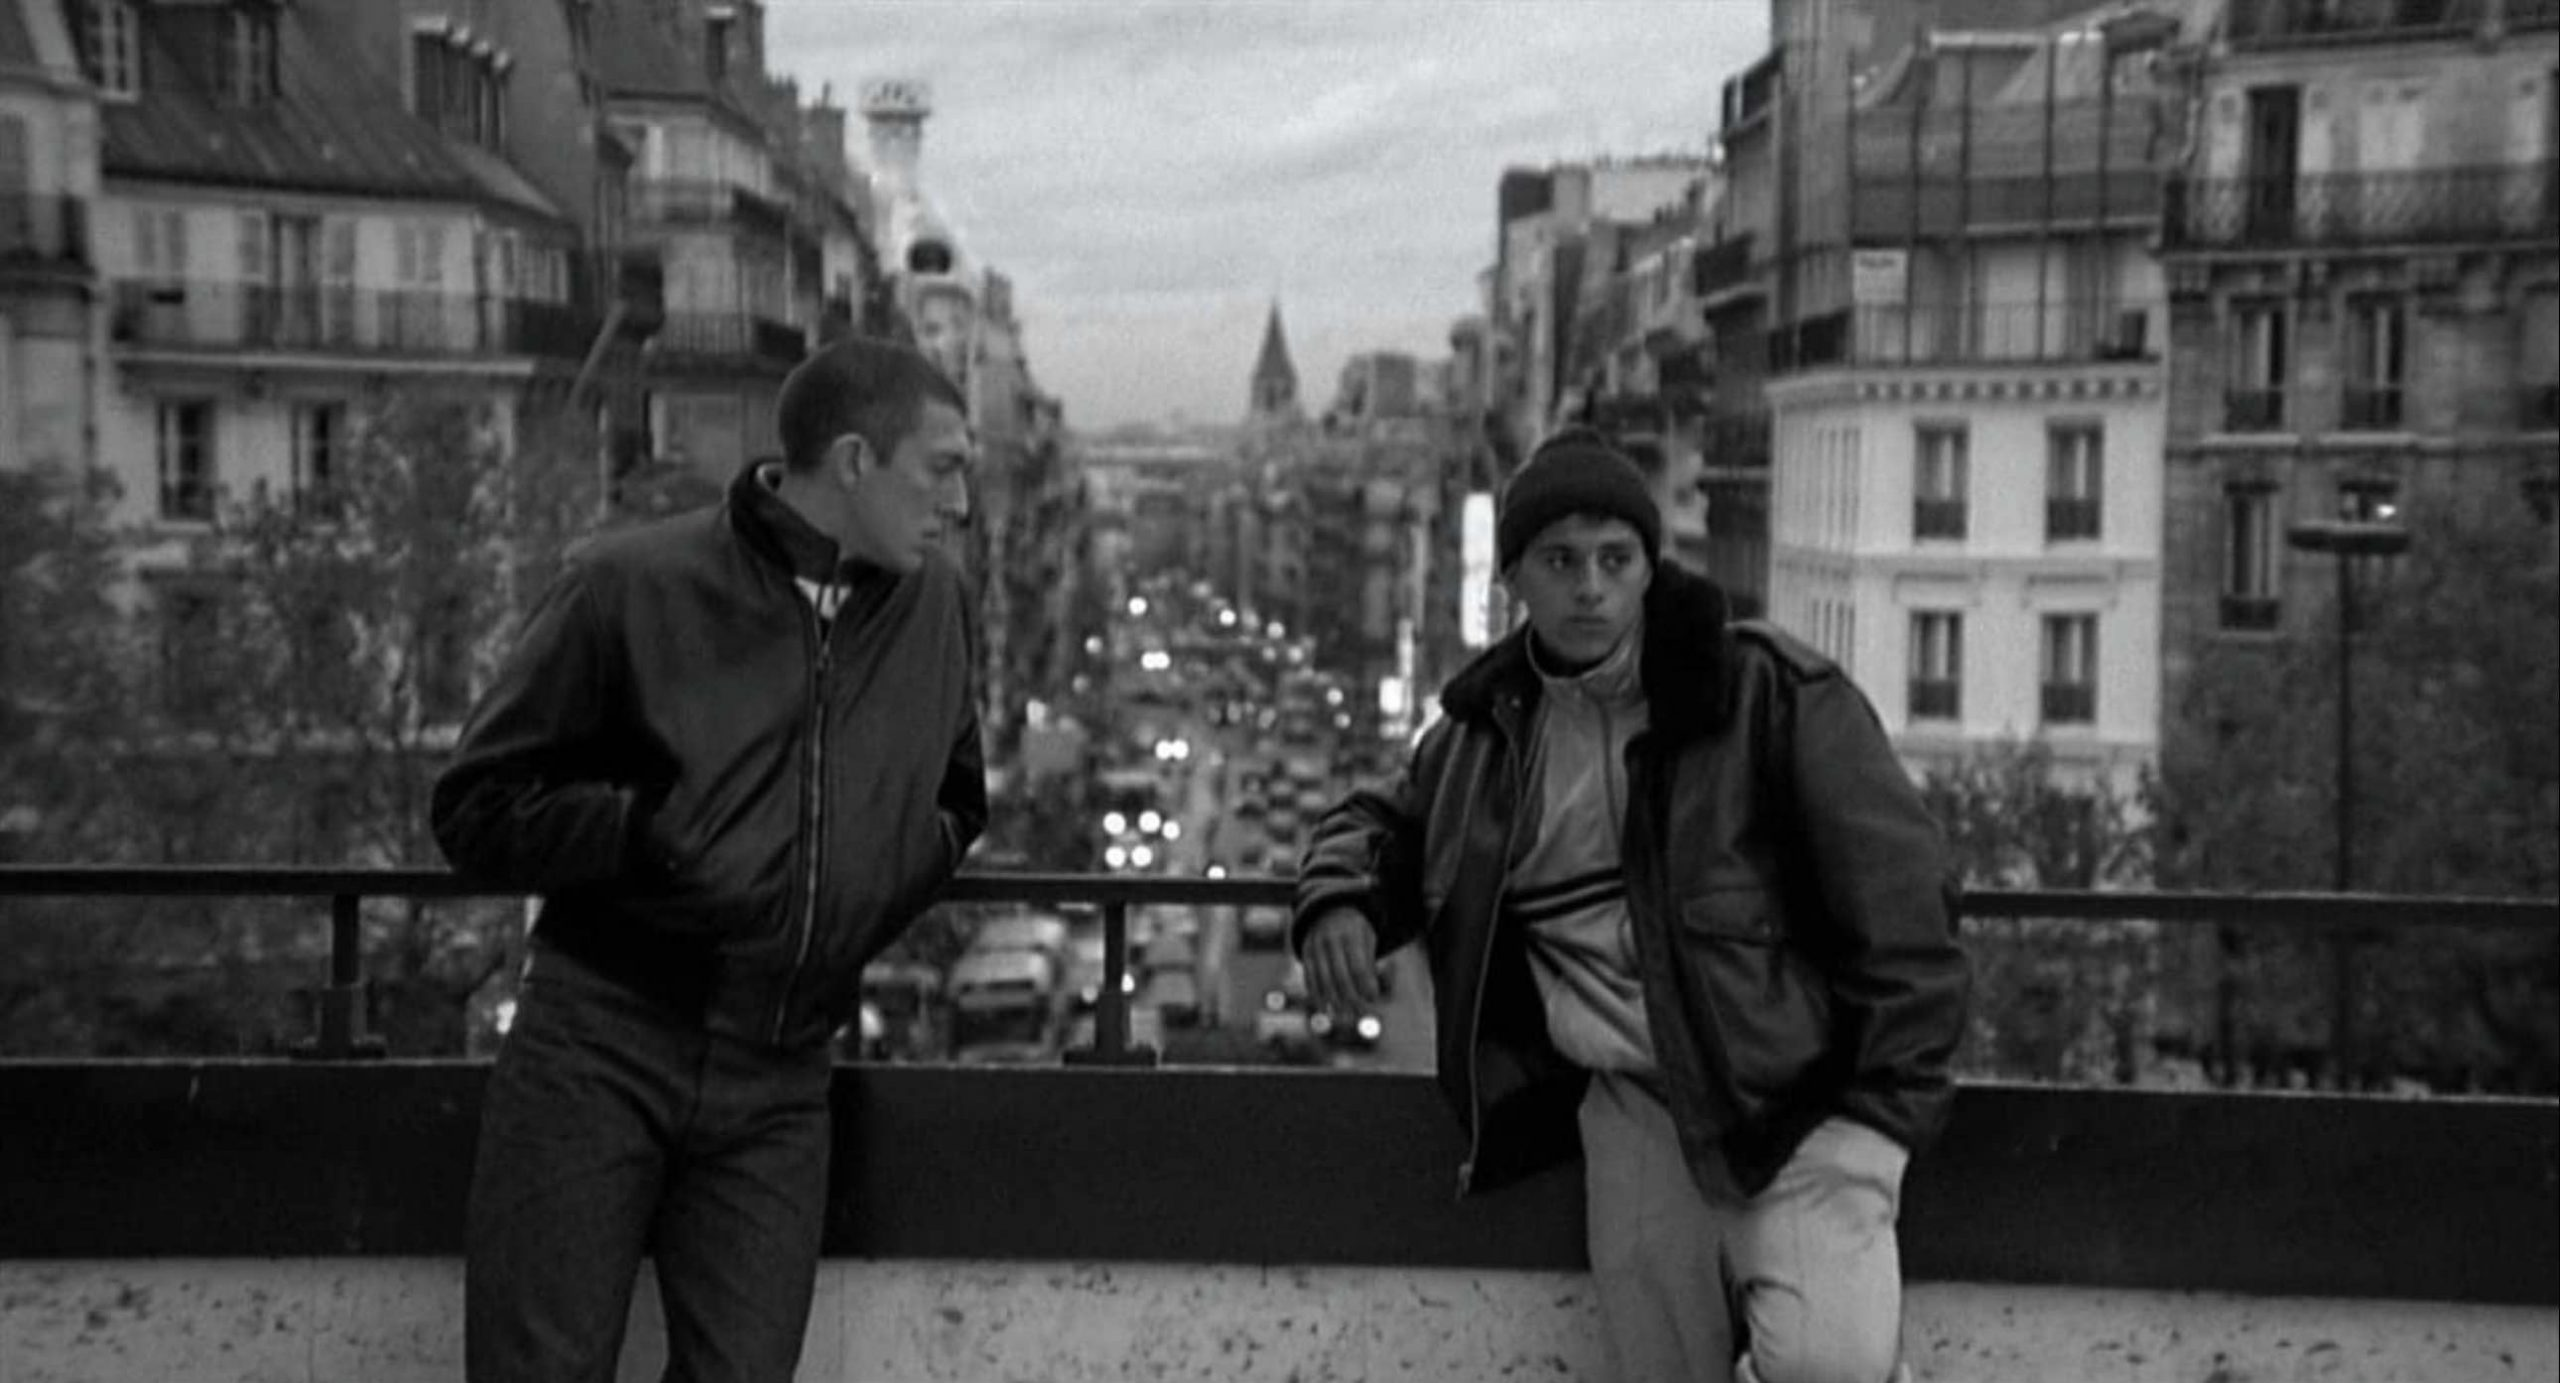 Image captured from film LaHaine, showing two young men leaning against a bridge in Paris